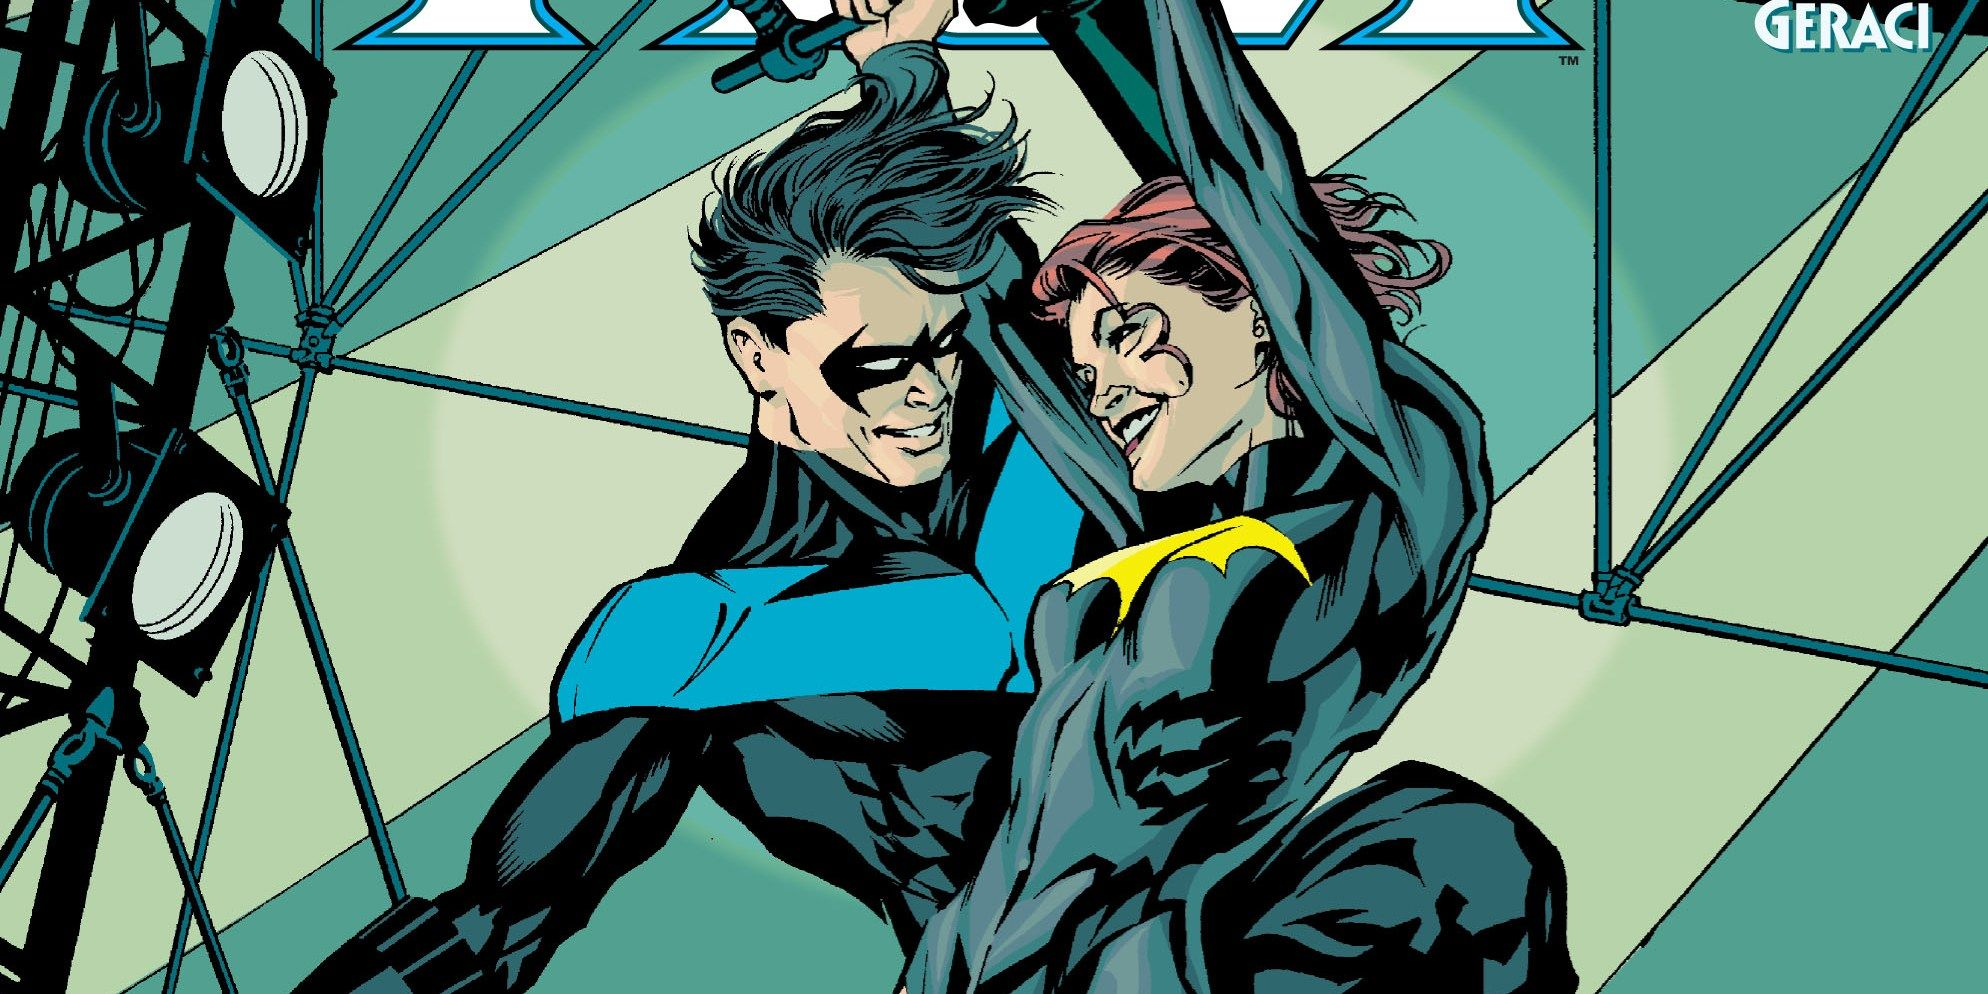 02088c4af305 15 Iconic Dick Grayson Covers